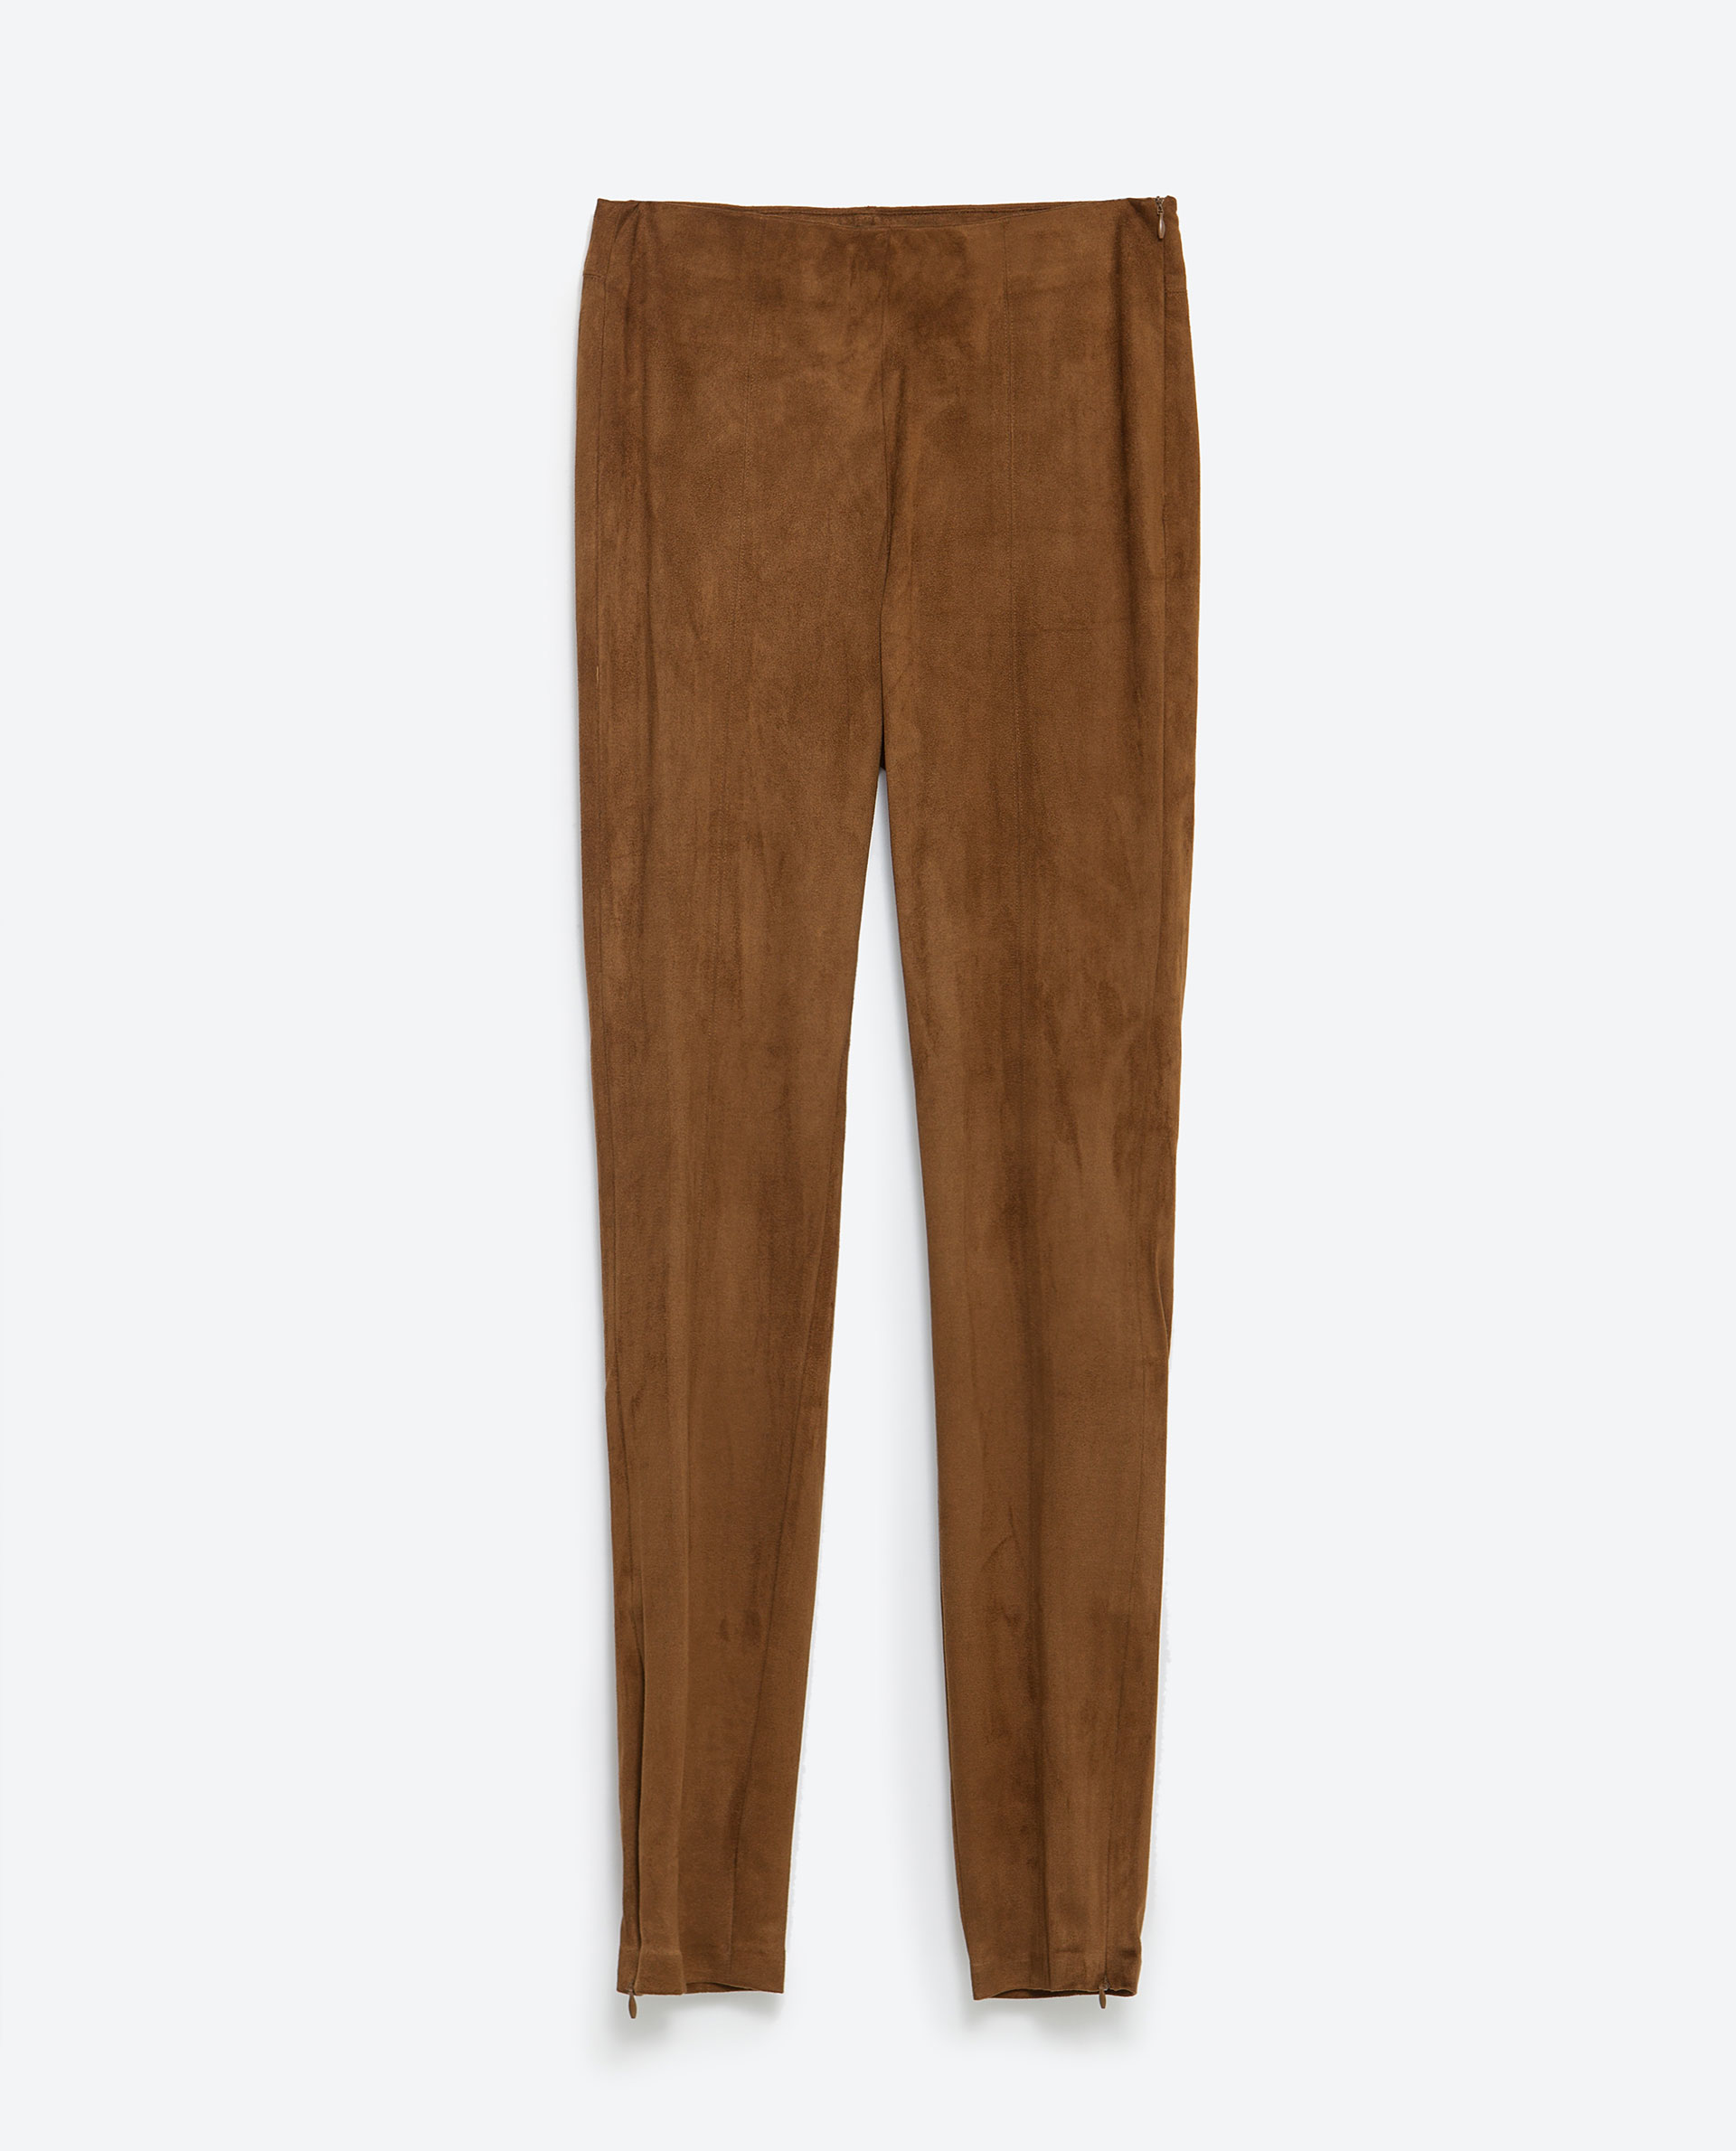 Zara Faux Suede Leggings in Brown